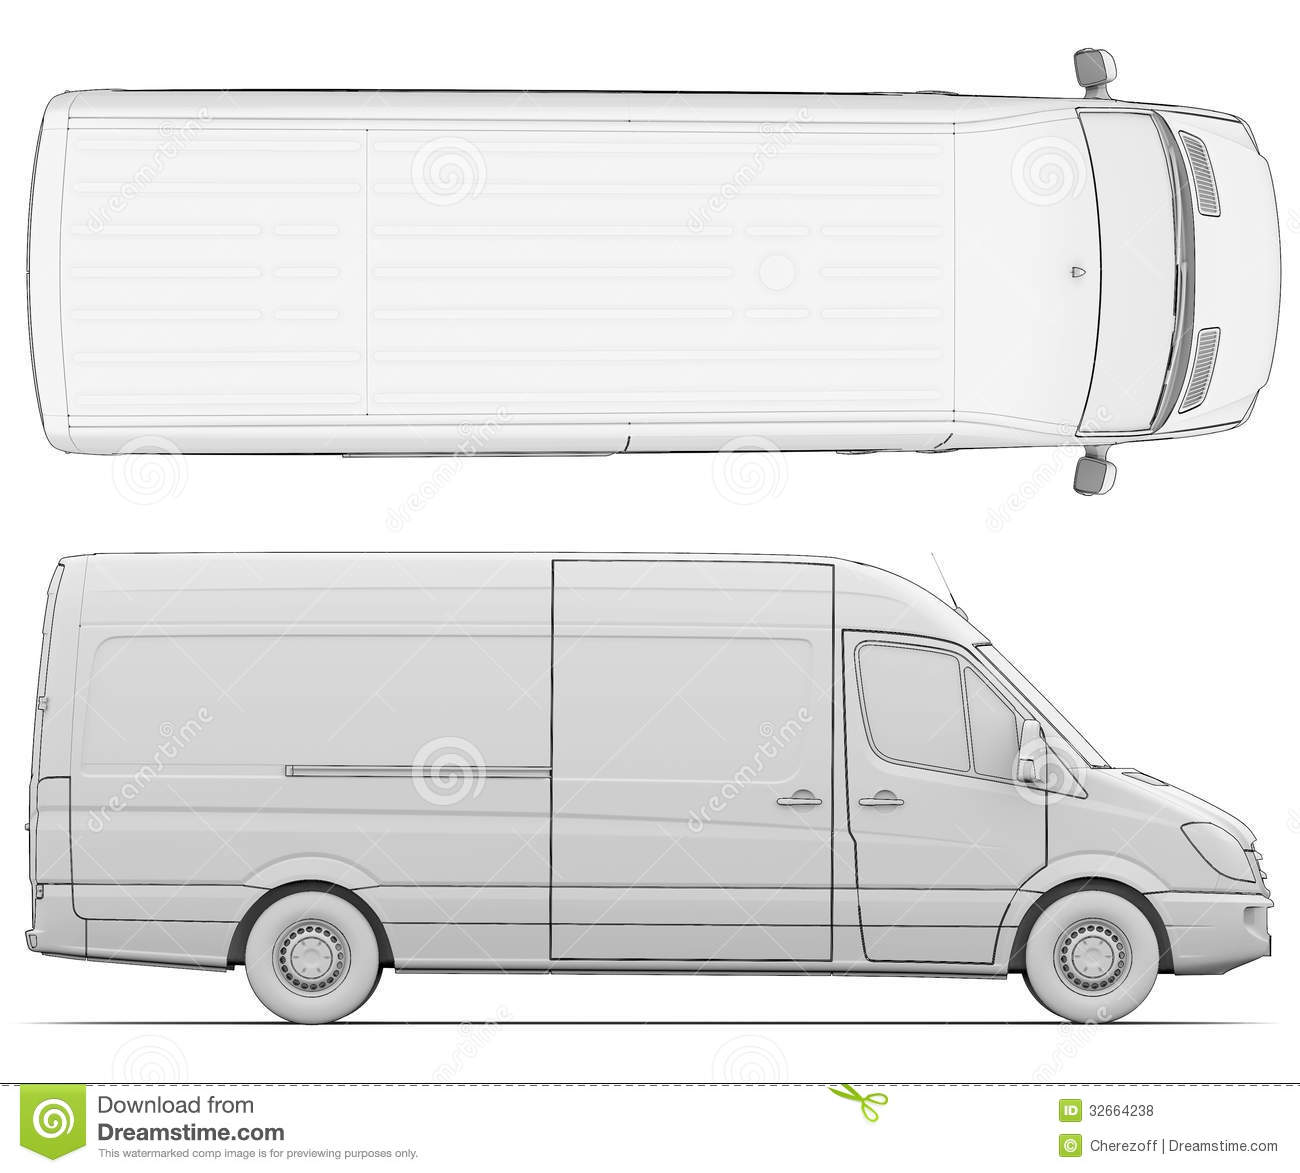 van drawing sketch white van stock illustration illustration of van drawing